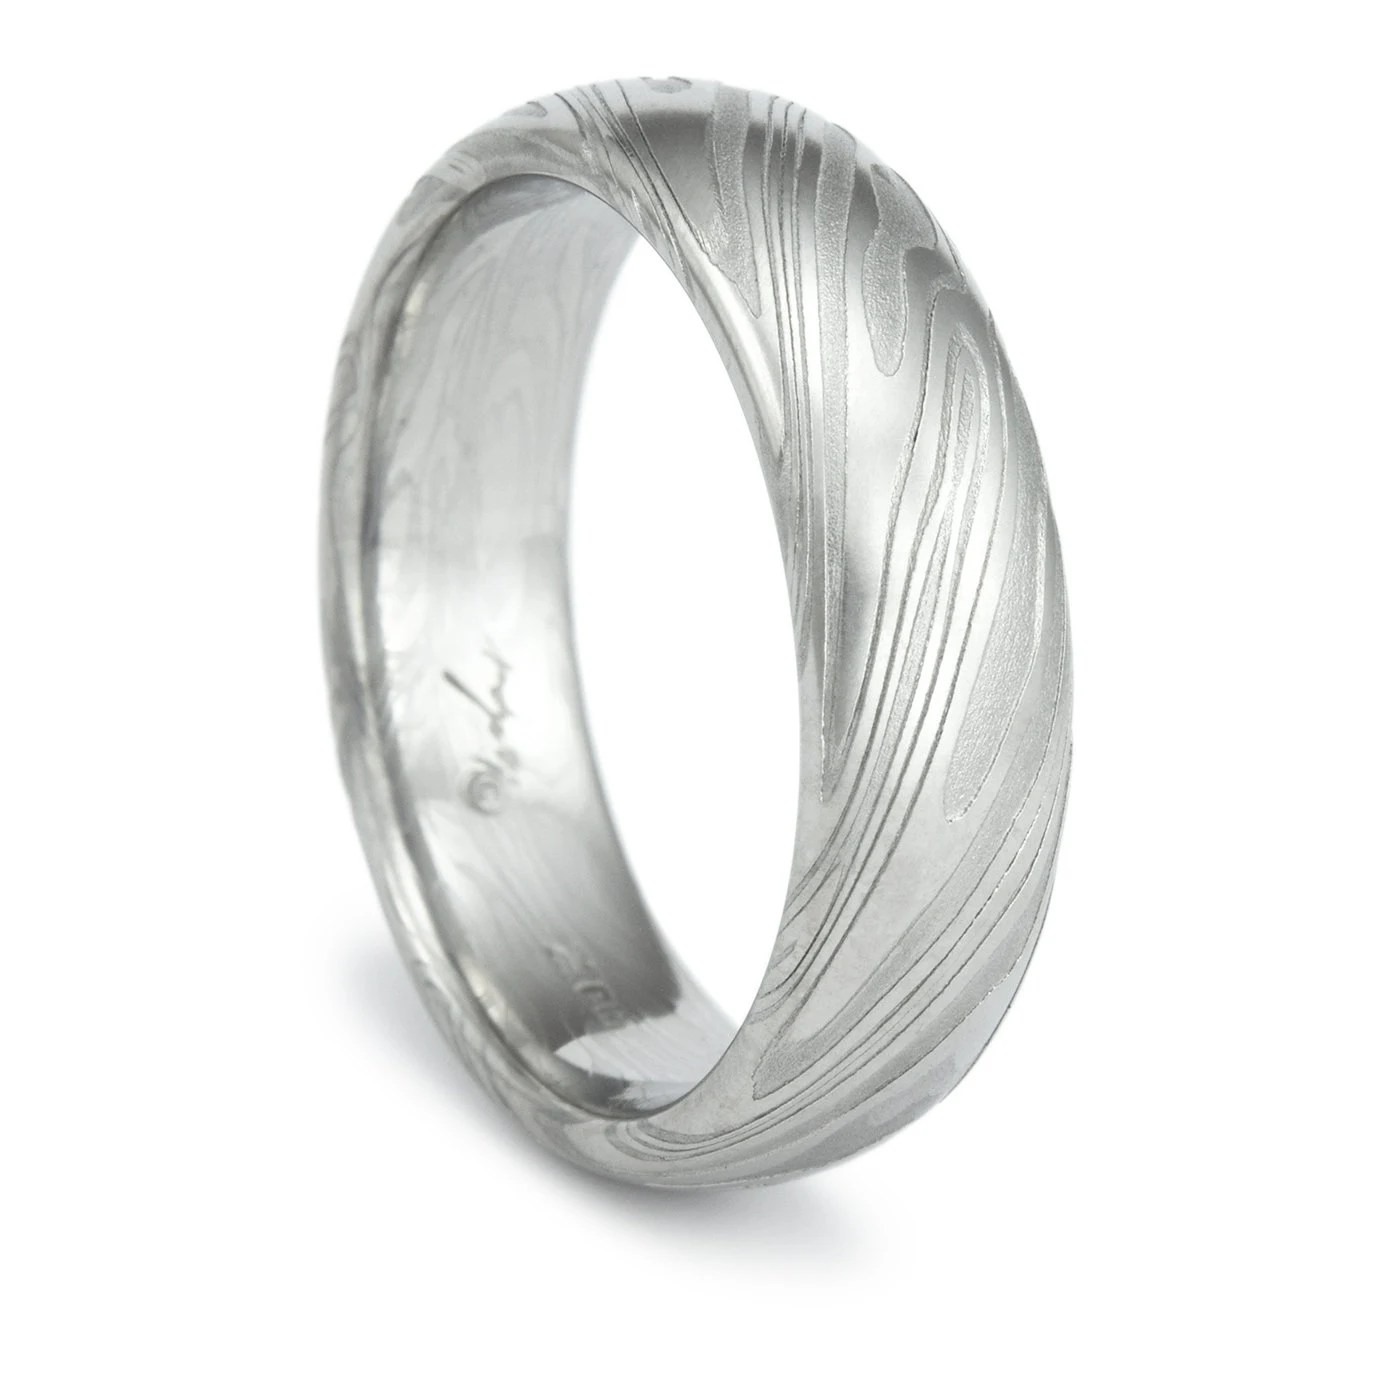 Damascus Steel Ring Unique Mens Wedding Band Twisted Wood